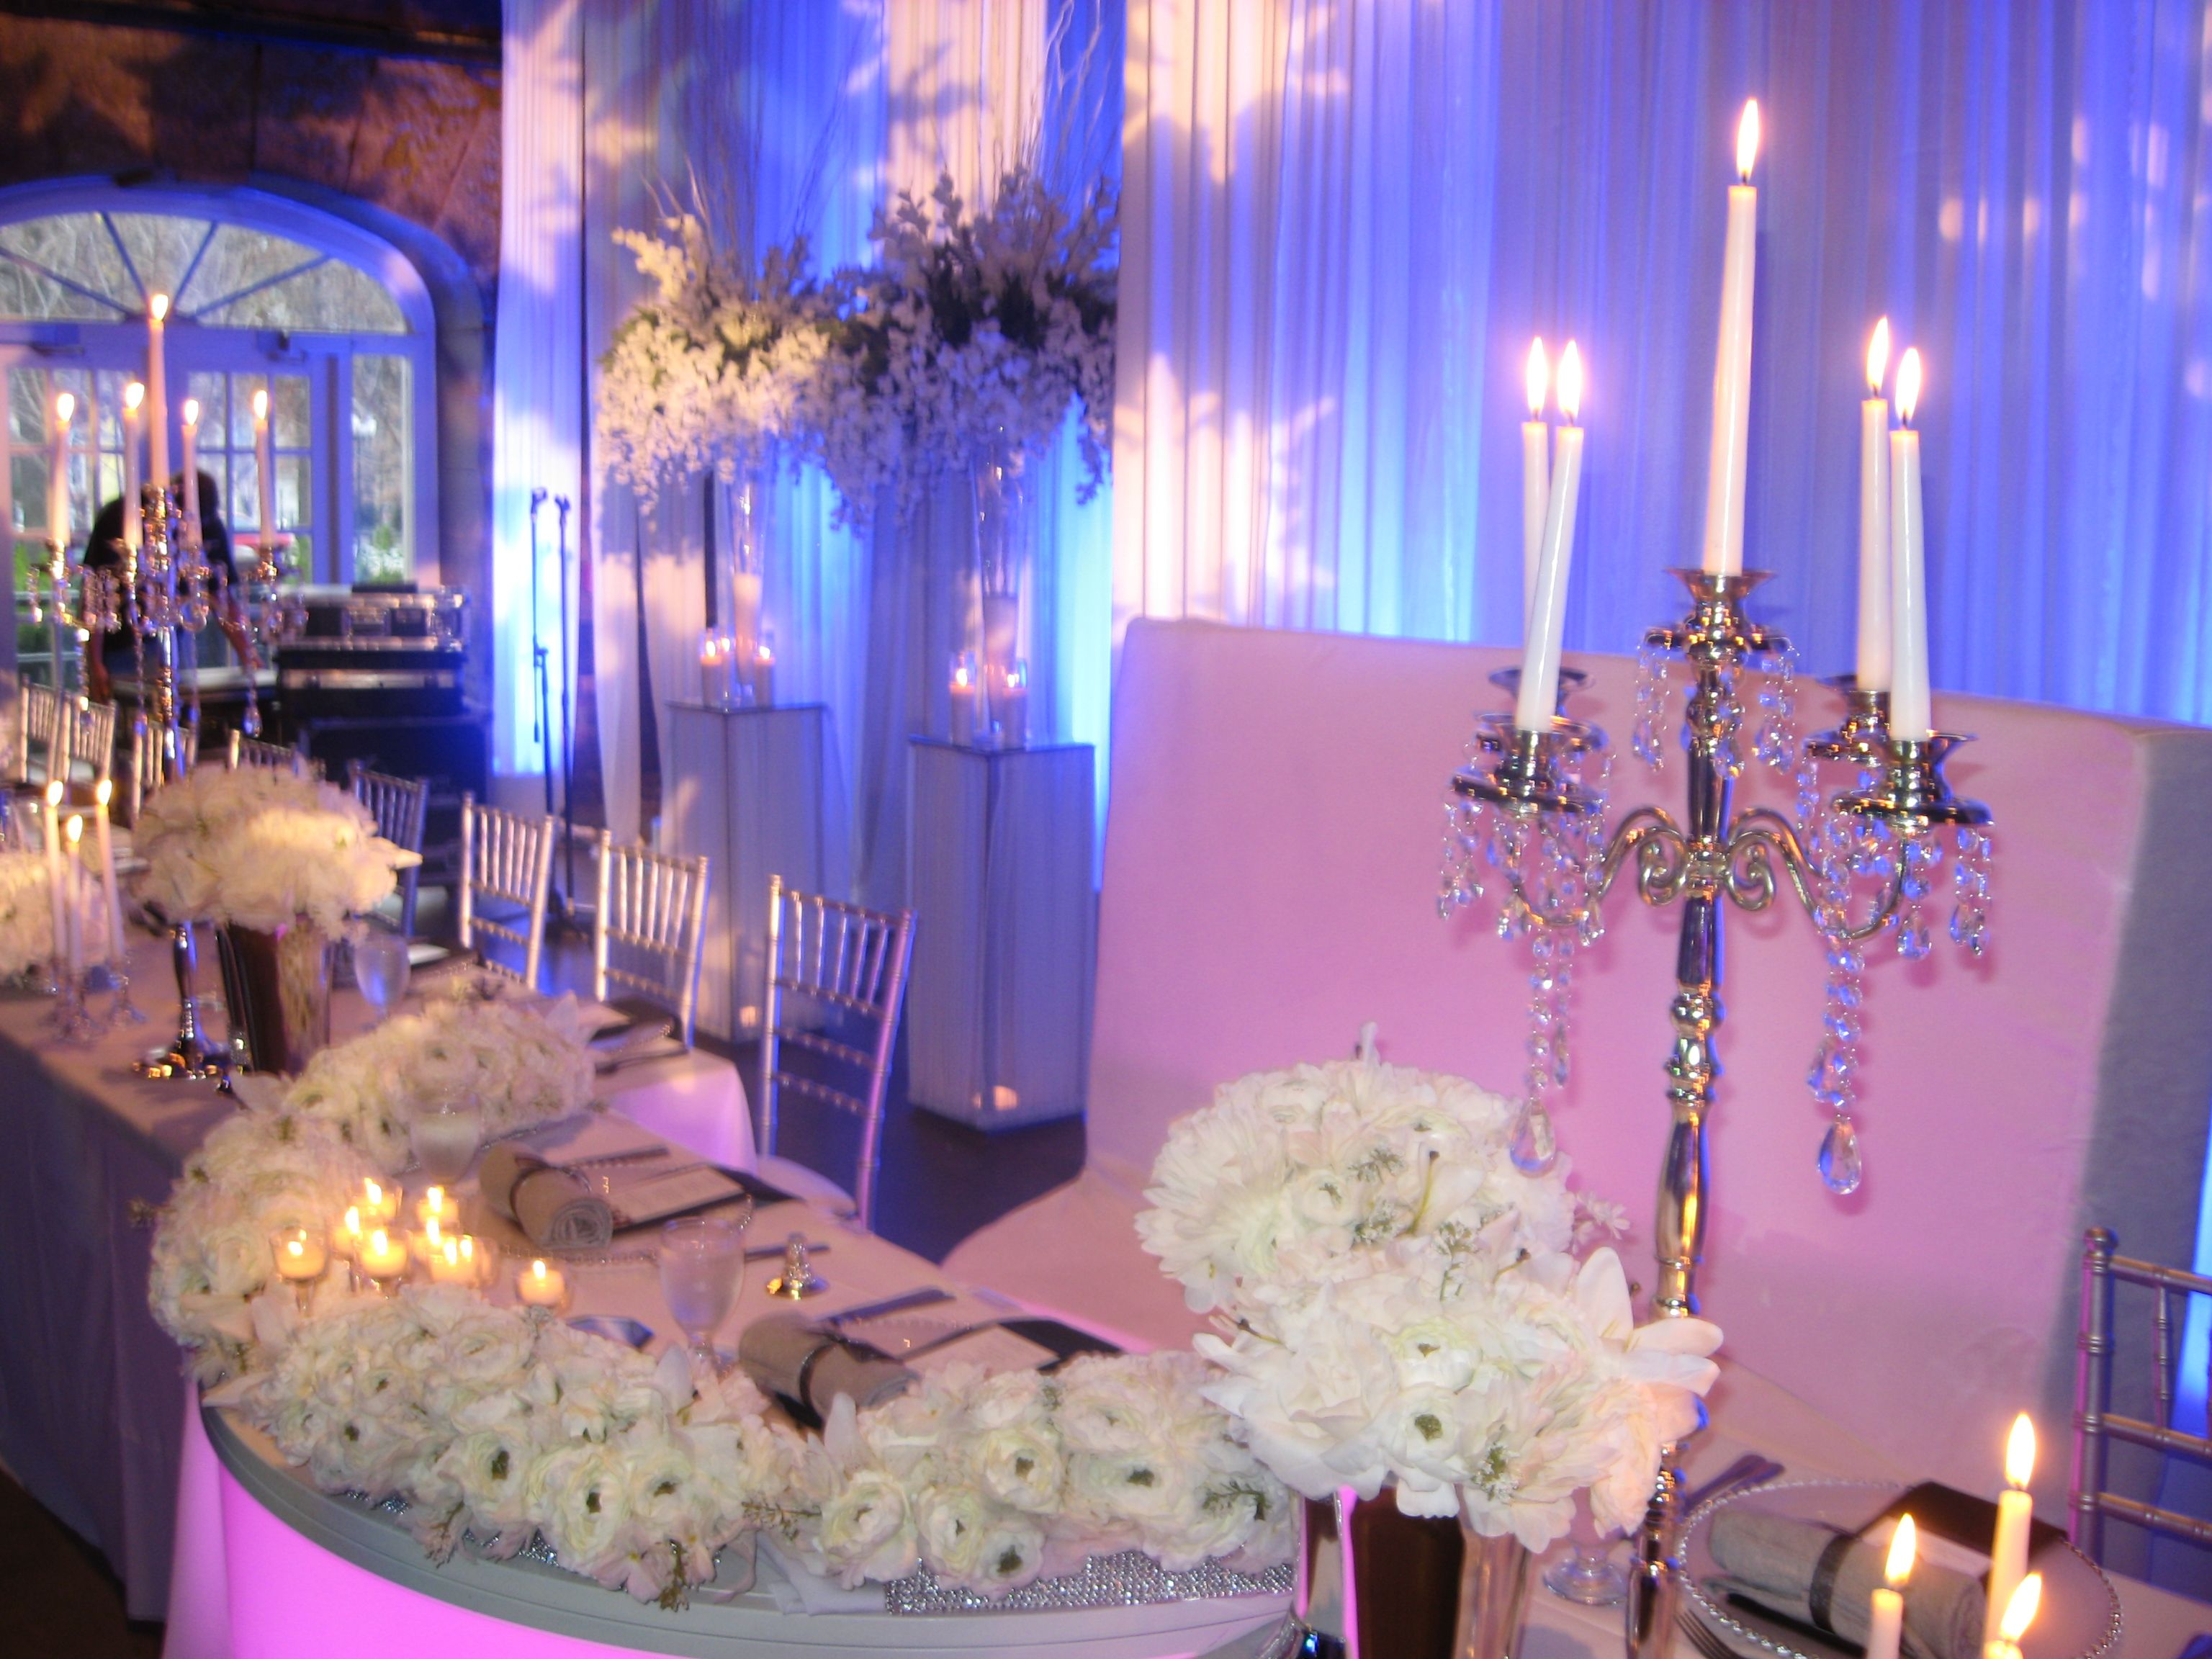 Atlanta wedding venue georgia railroad freight depot winter atlanta wedding venue georgia railroad freight depot winter wonderland by lavish fantasy weddings and events junglespirit Image collections